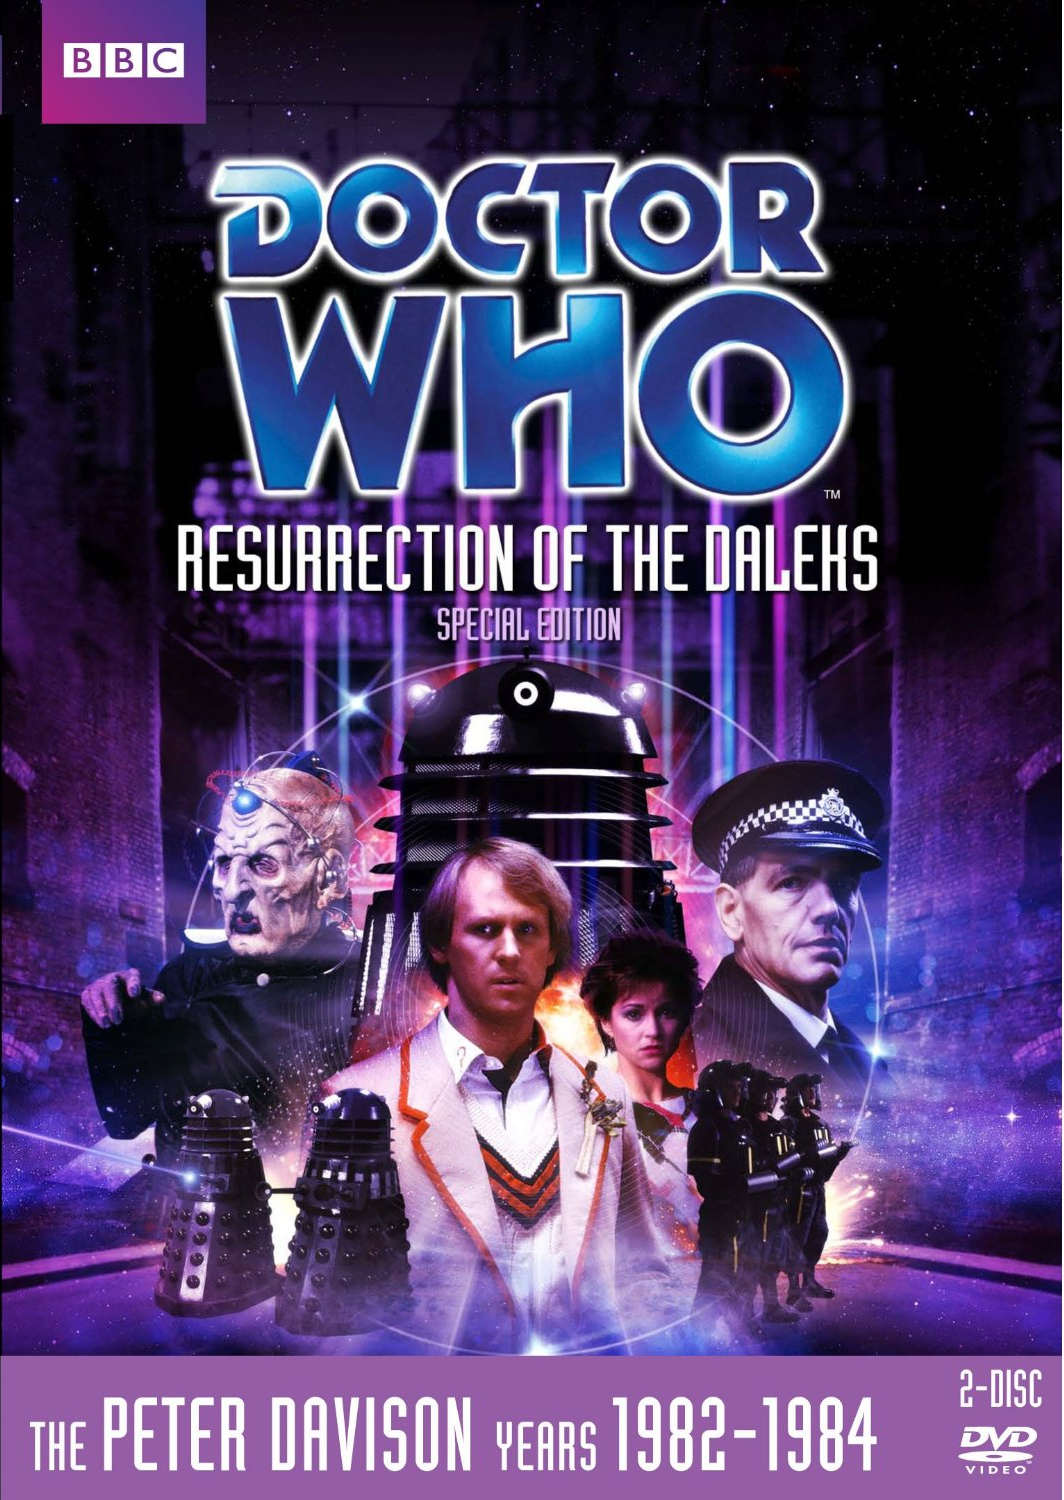 Resurrection of the daleks special edition us dvd